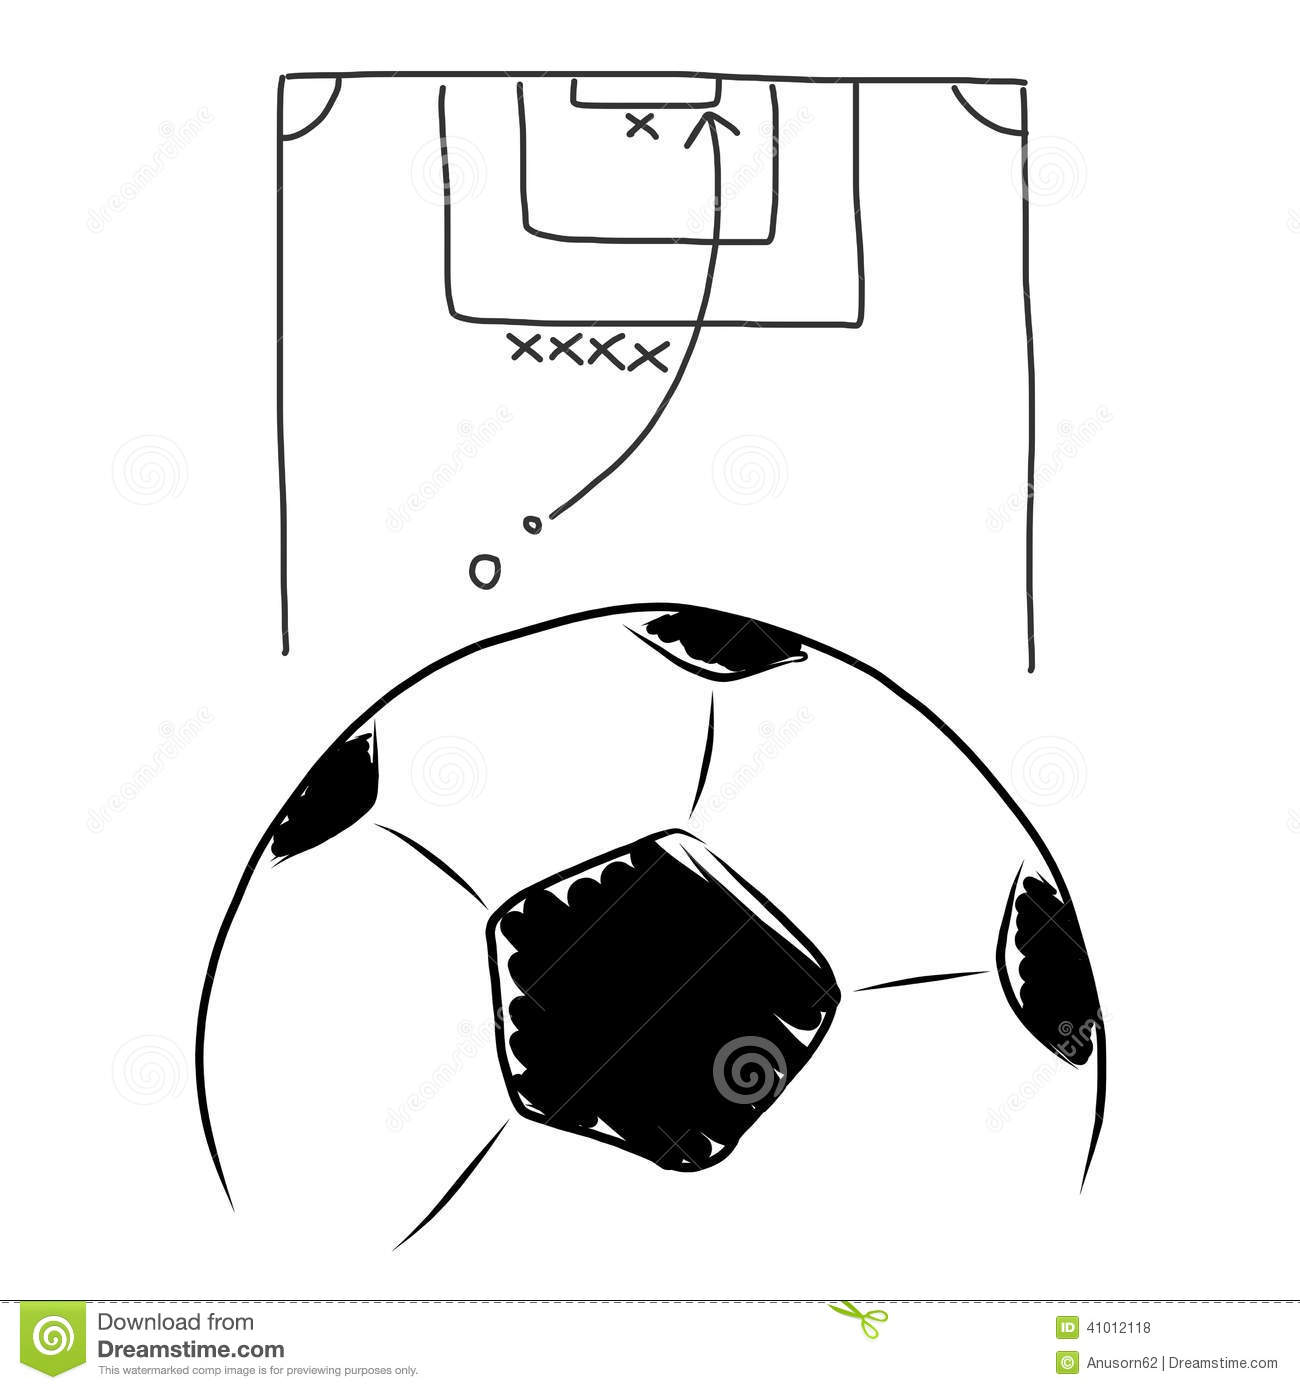 Strategy Soccer Free Kick Hand Draw Stock Illustration